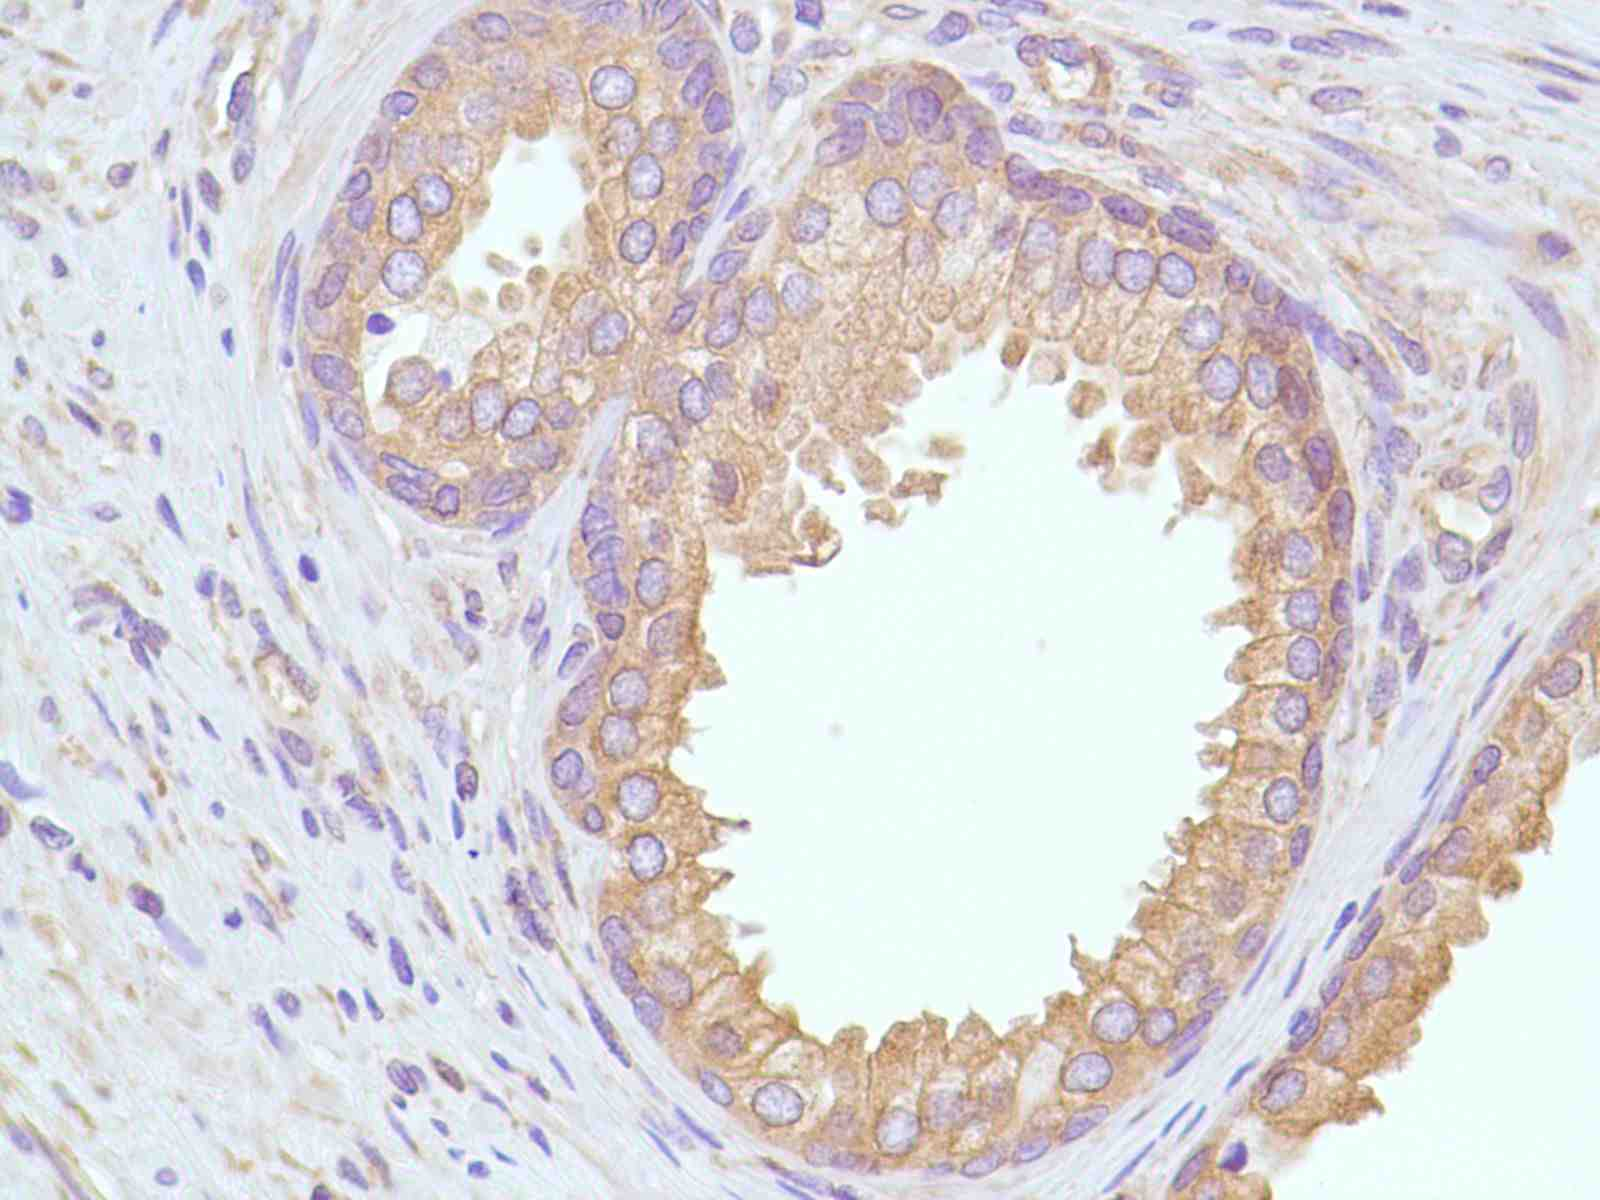 Human Prostate stained with anti-Calpastatin antibody